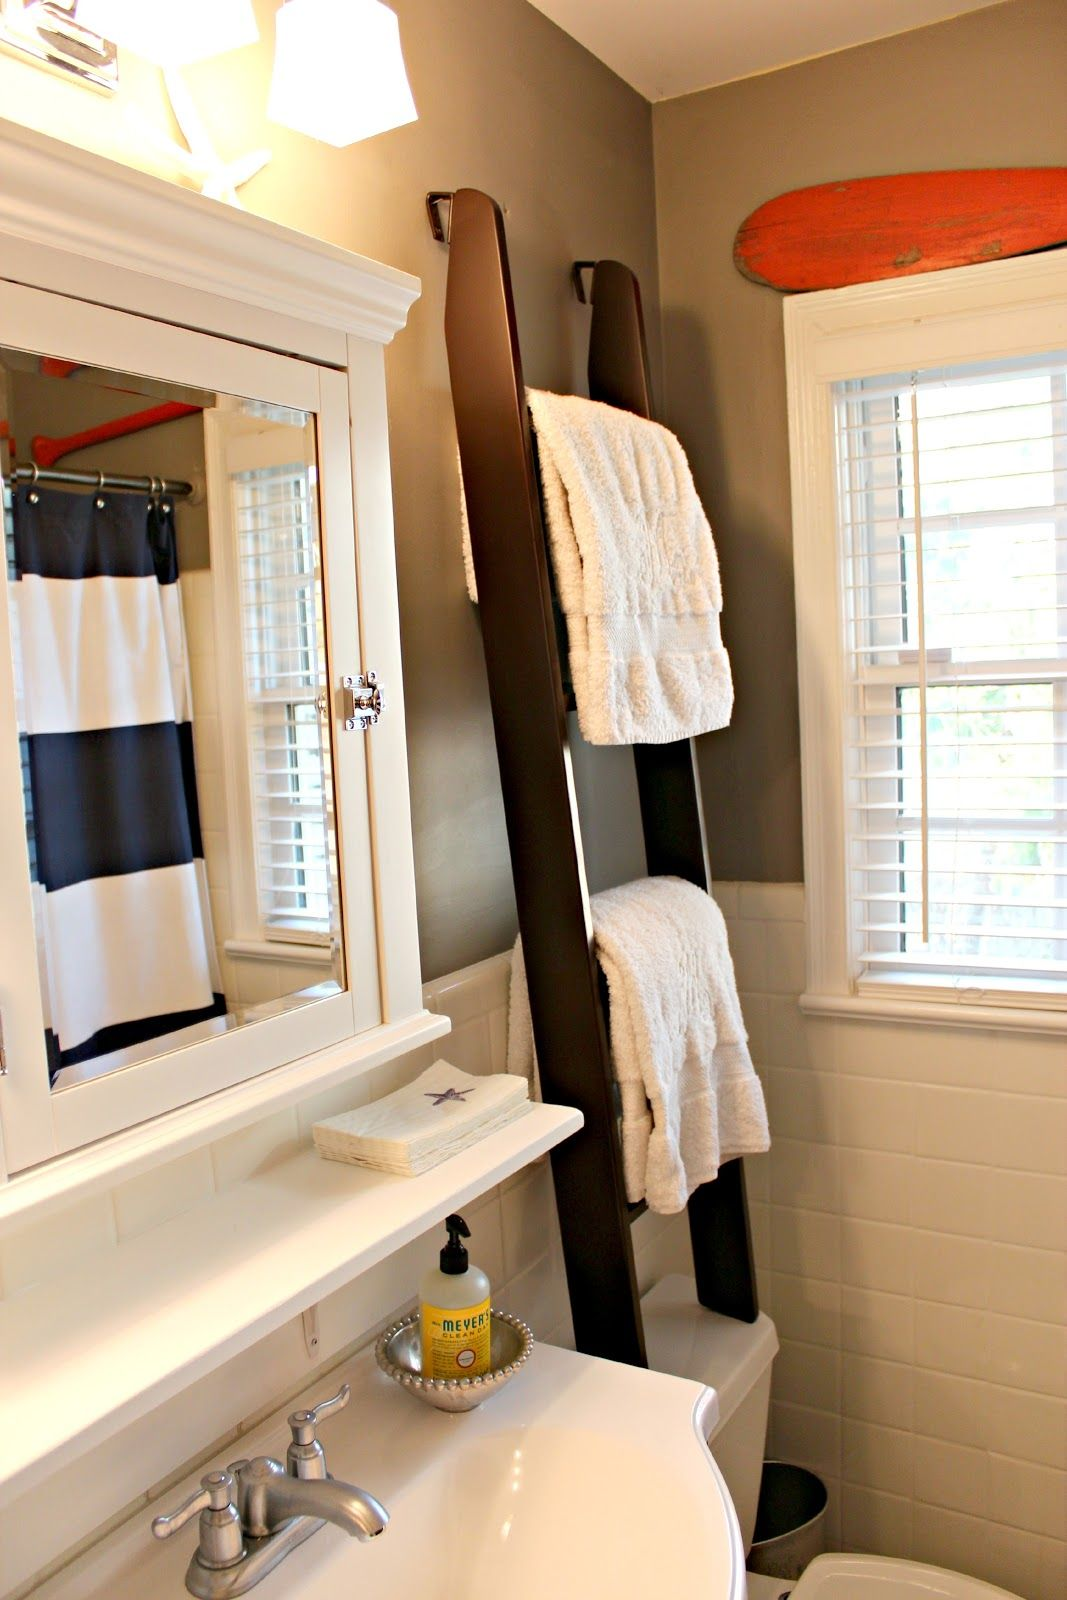 Bed and window placement  live the ladder placement over the toilet from